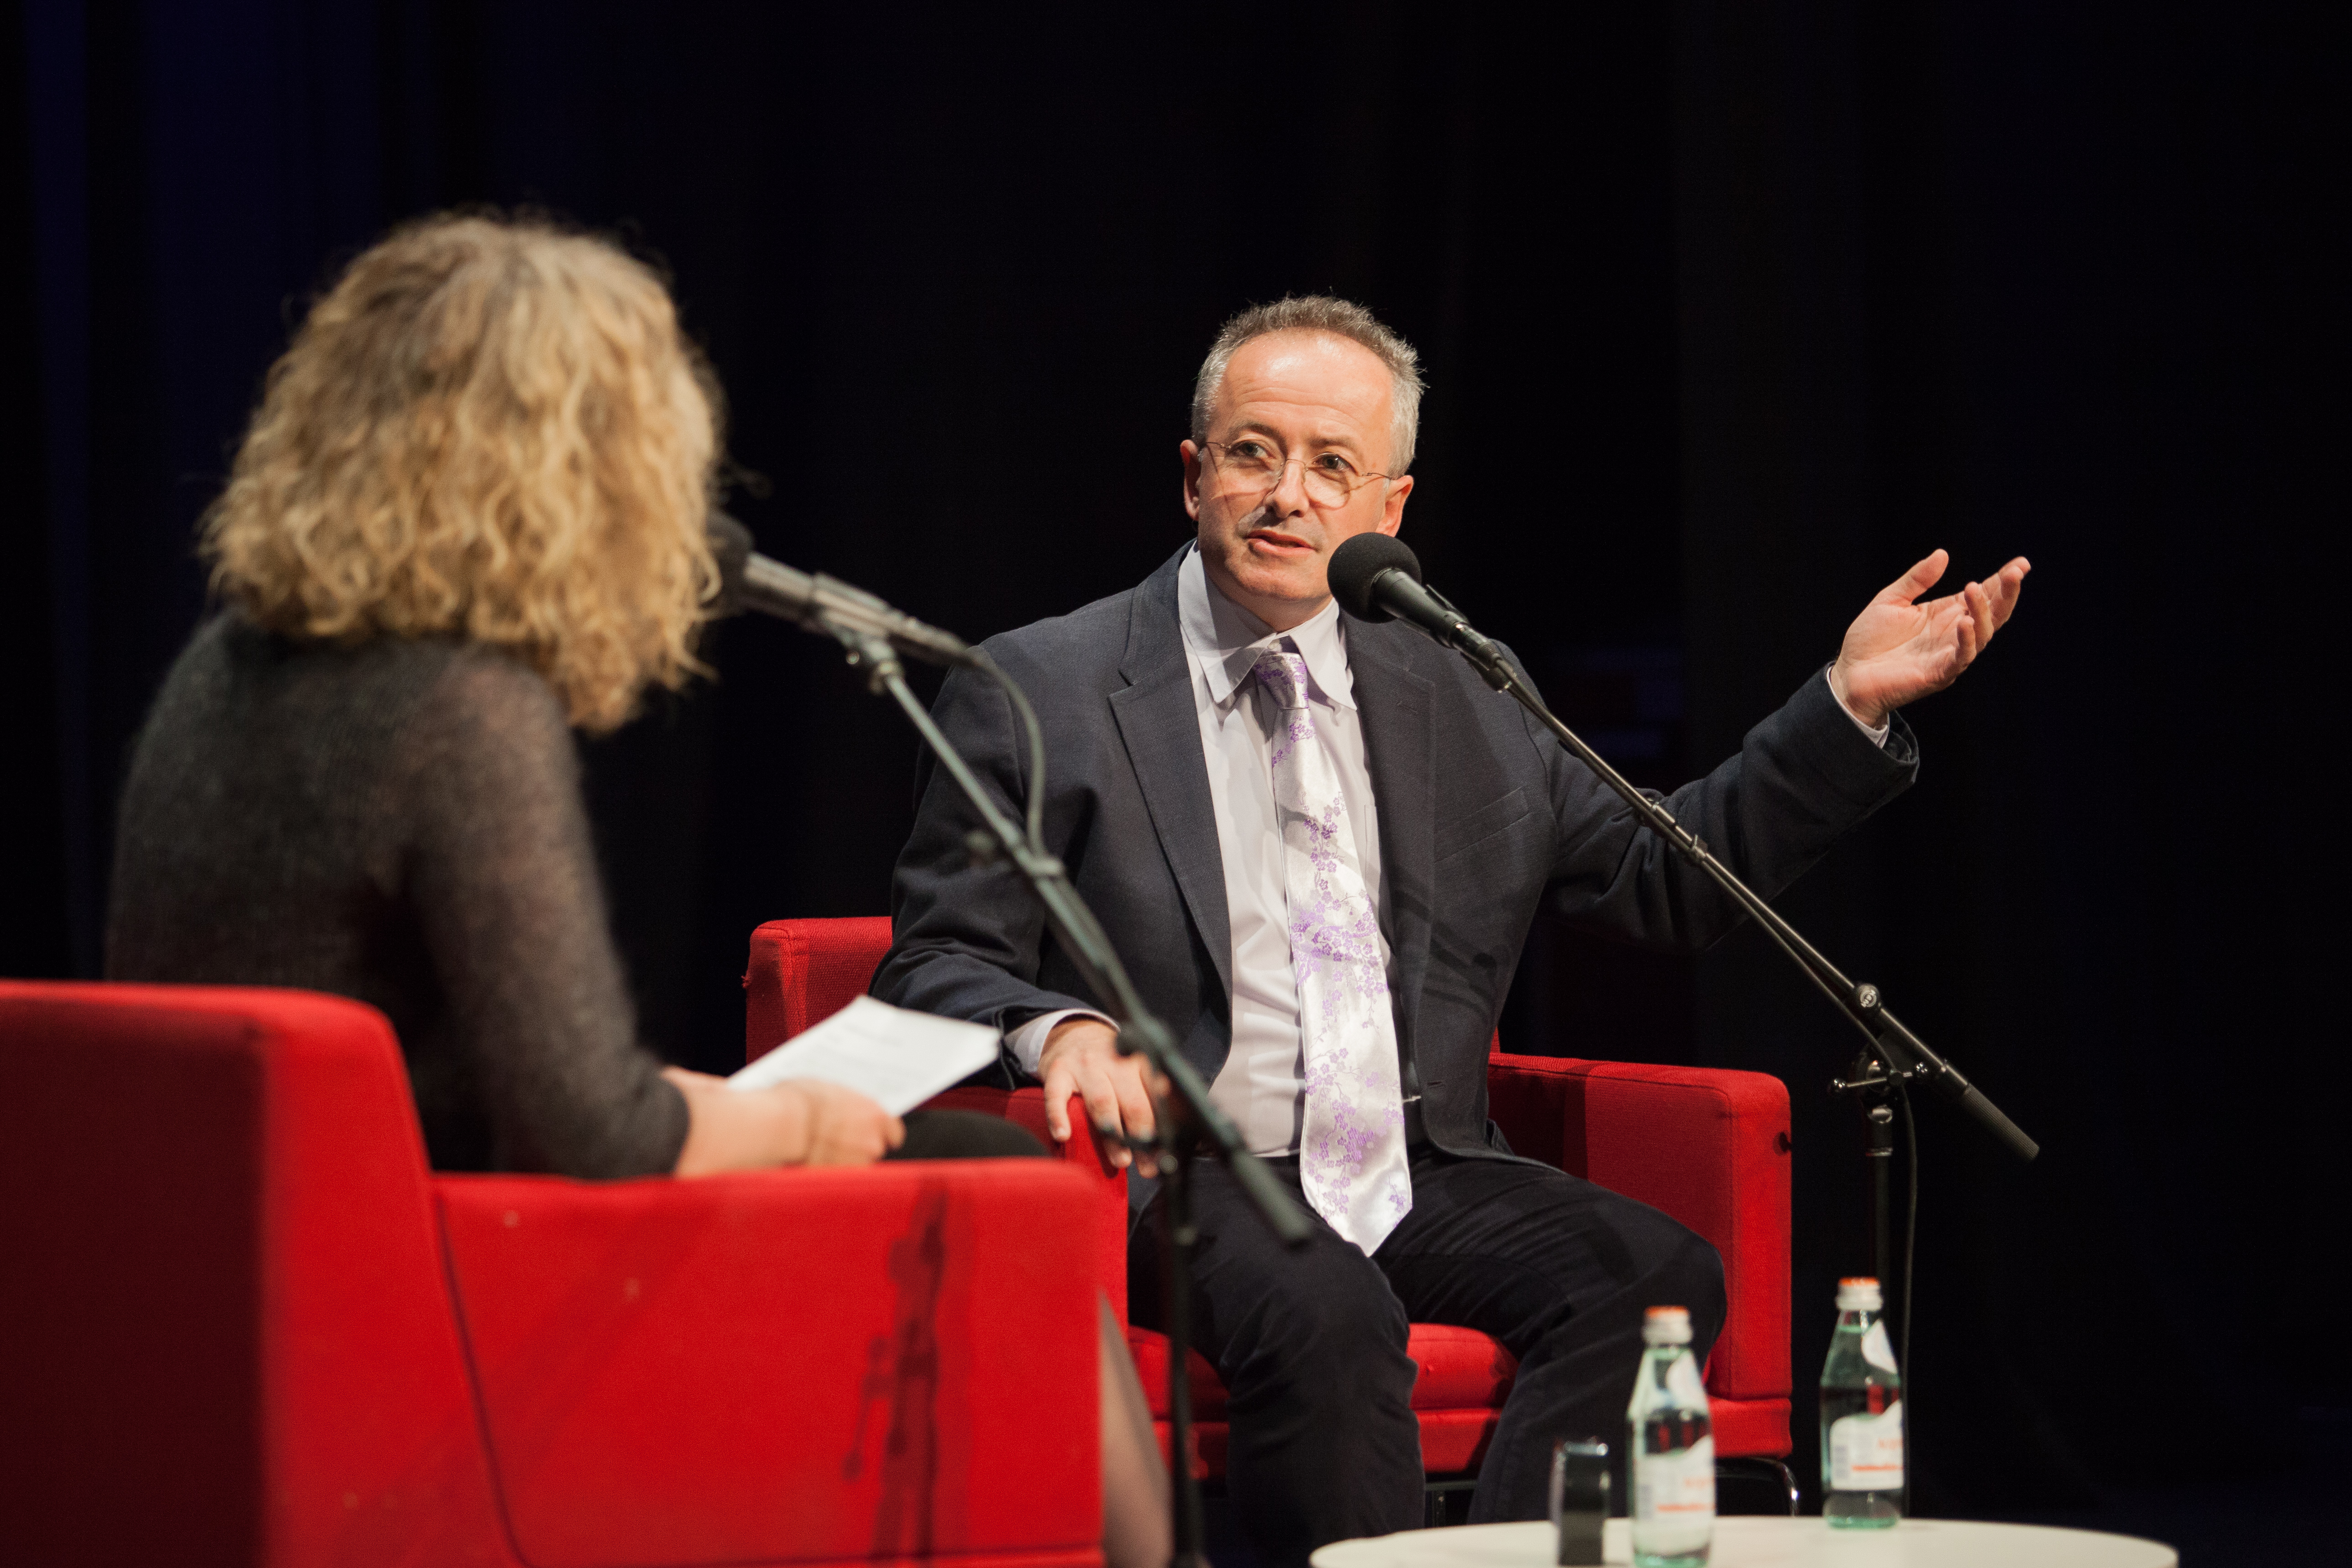 Andrew Denton in conversation with Sally Warhaft (Connor O'Brien)